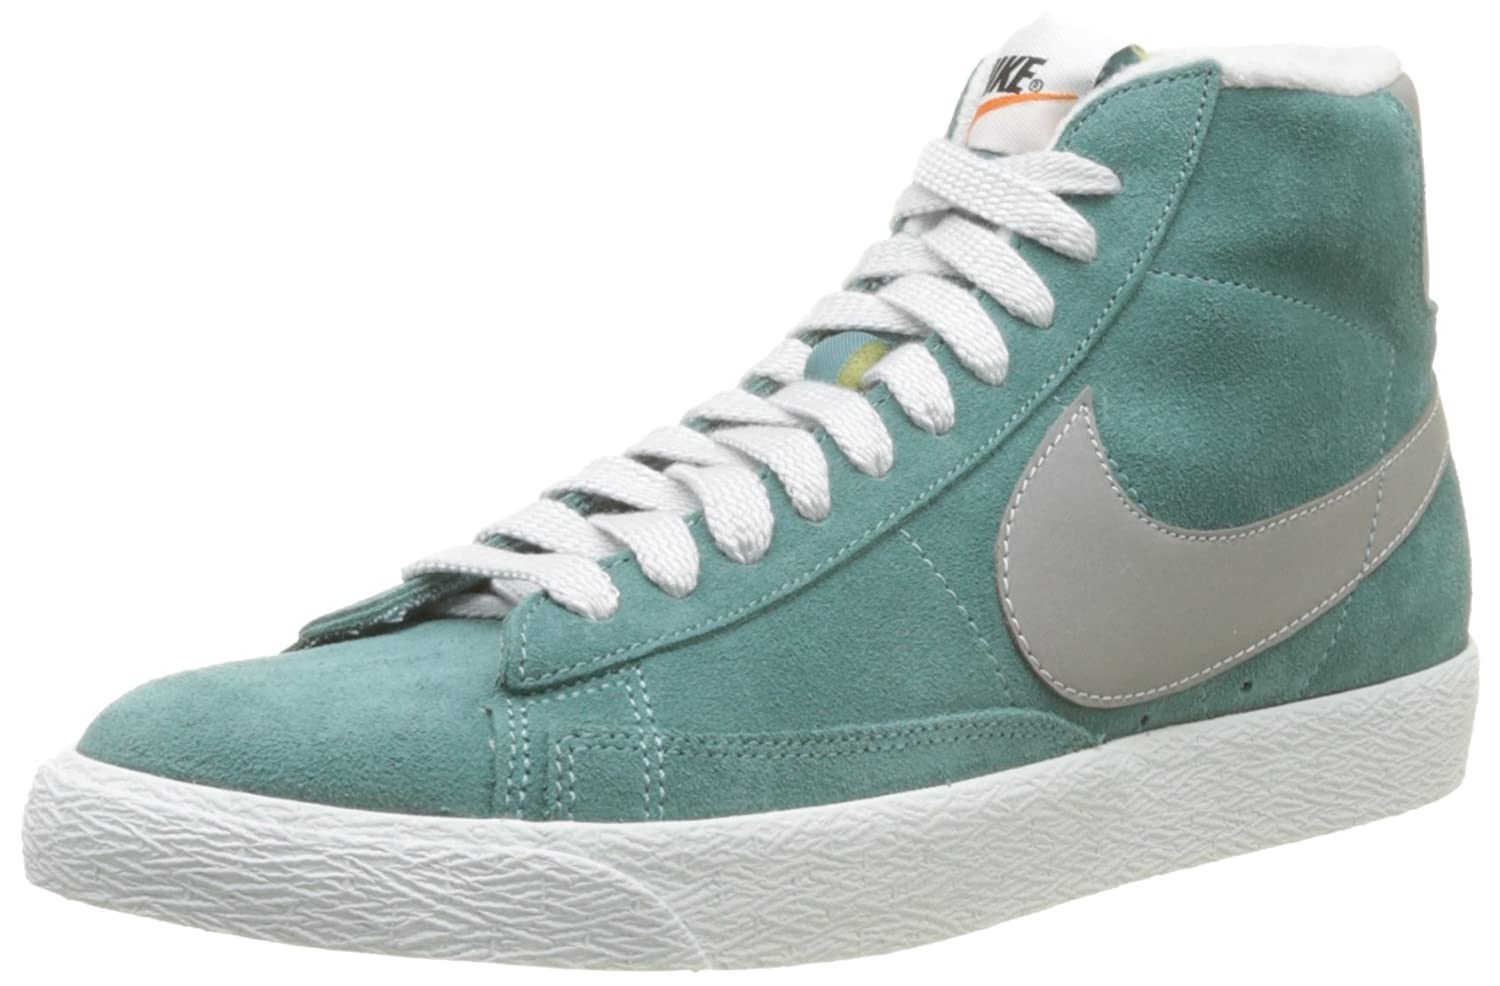 new concept e9acb 603db Sneakers nike vintage homme